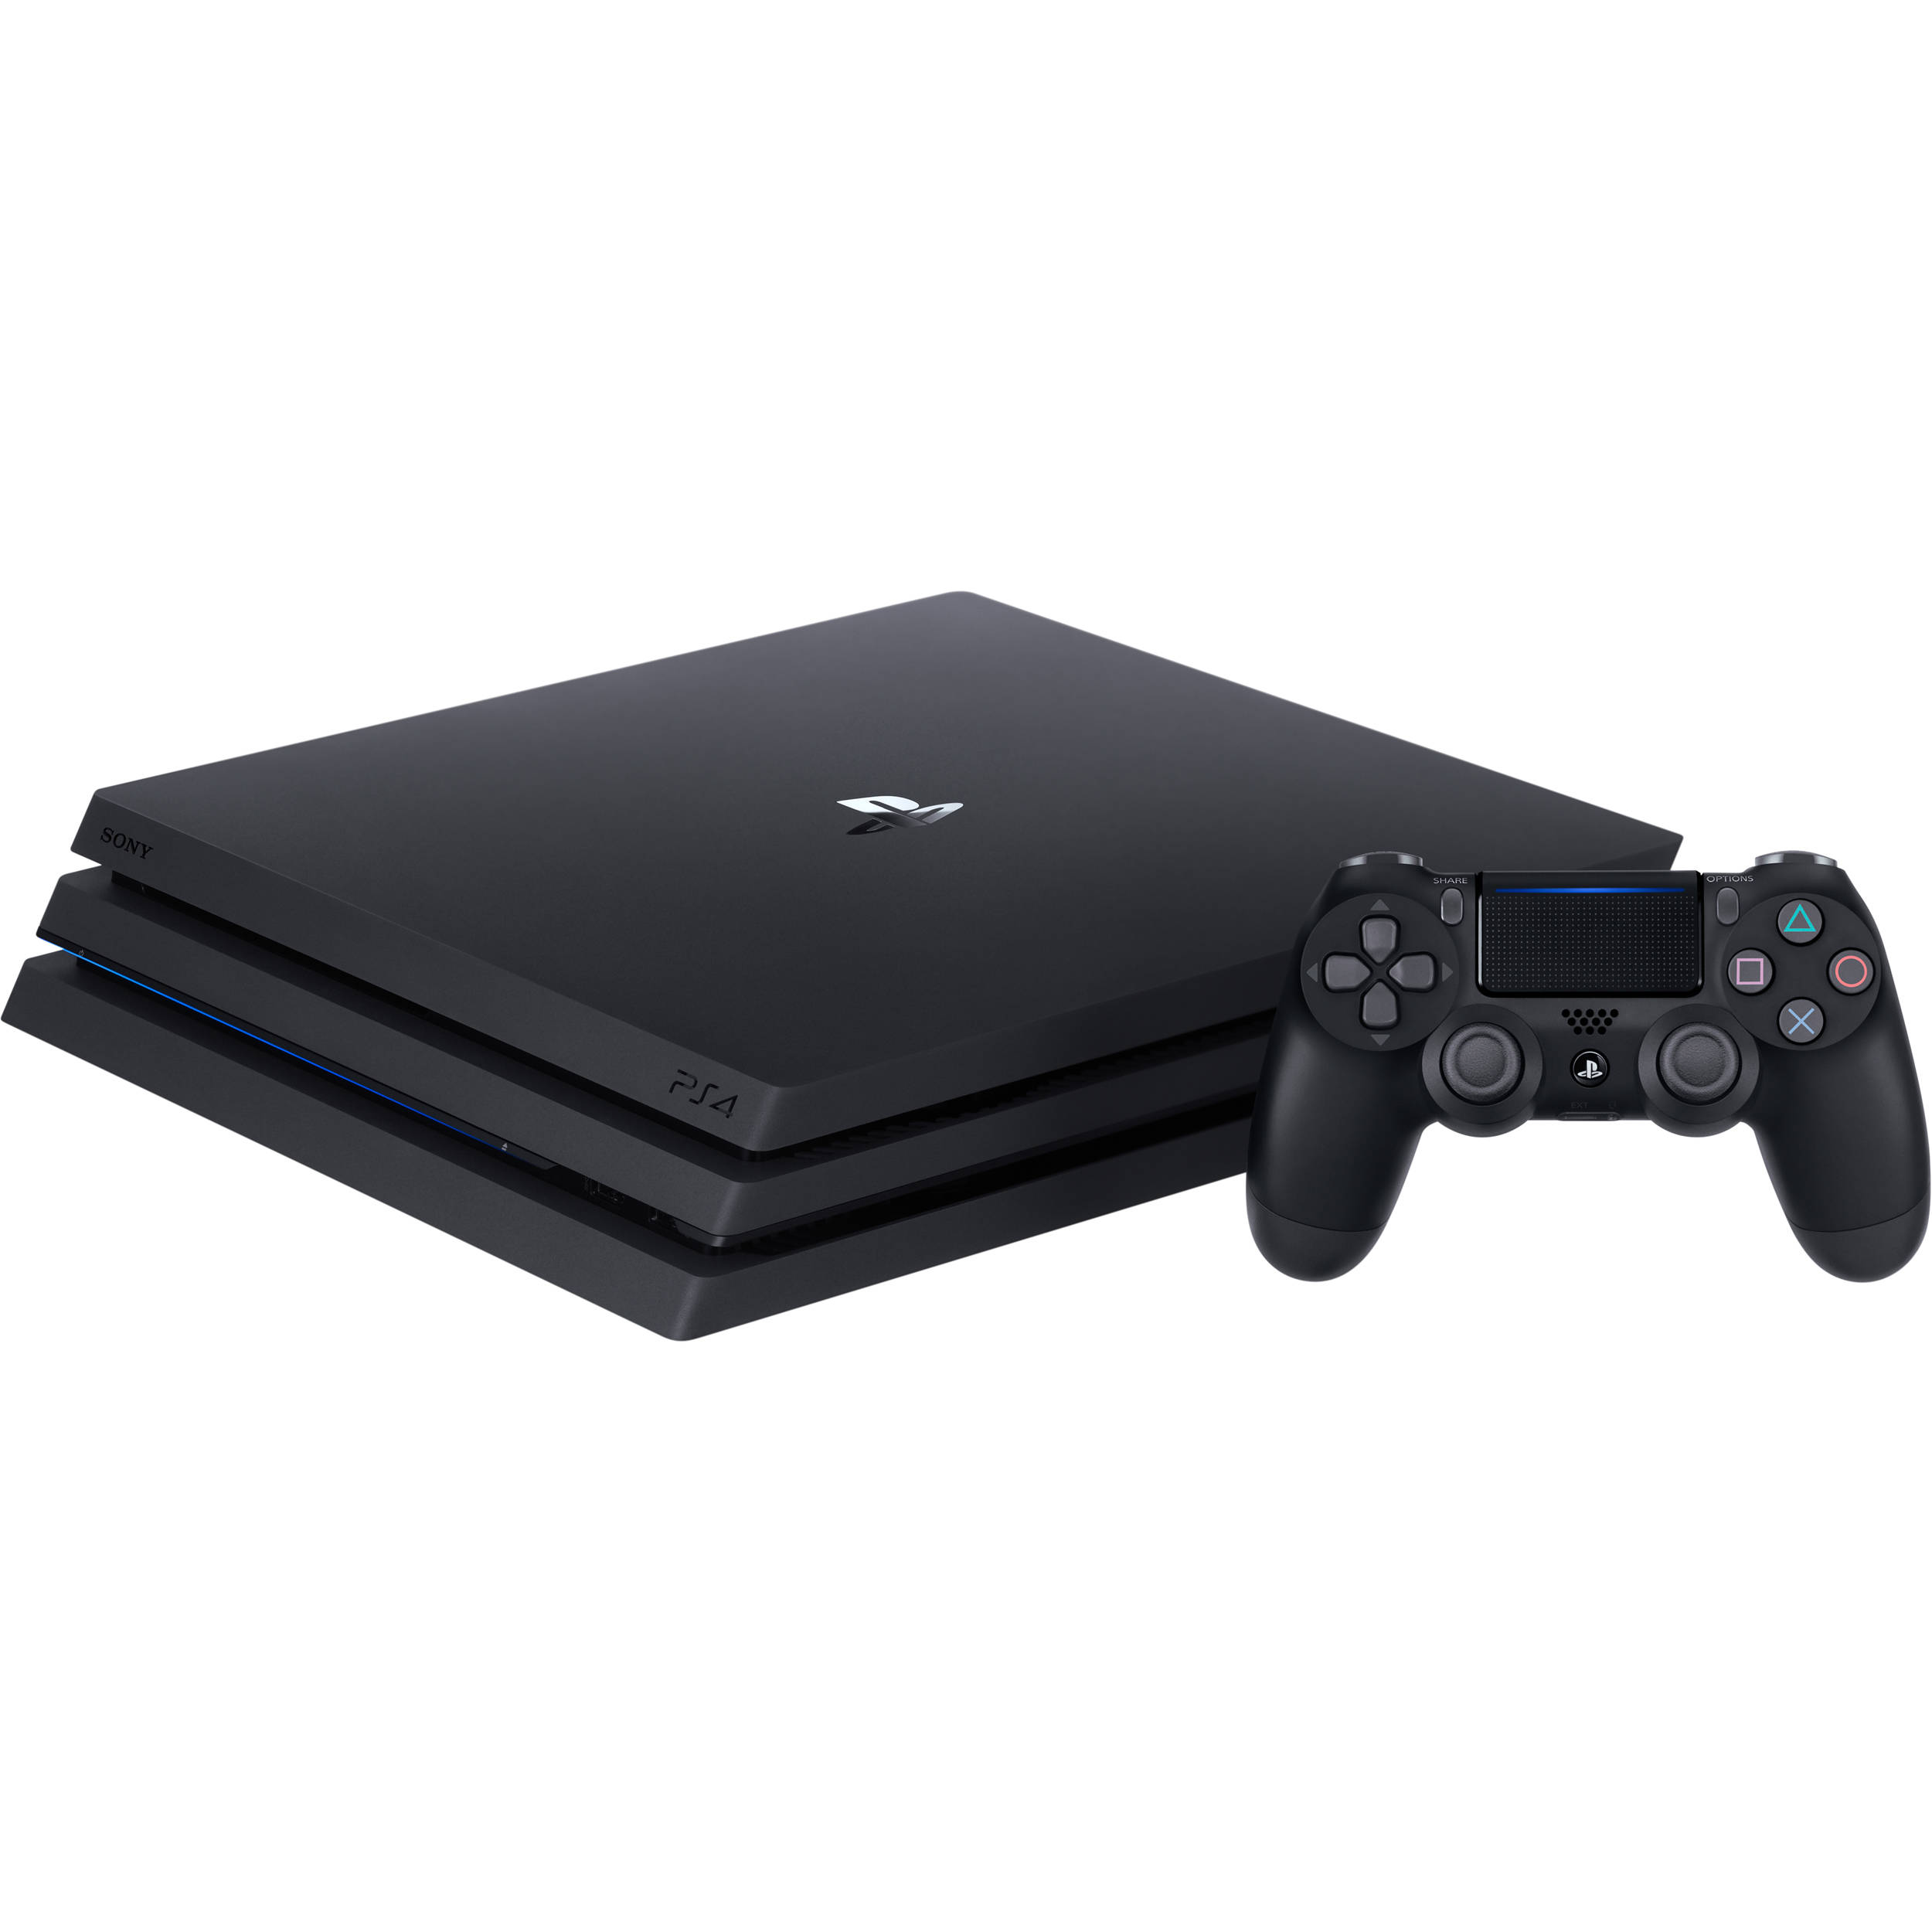 PlayStation 4 Is Sony's Fastest Selling Console In Asia ... |Sony Playstation 4 Games